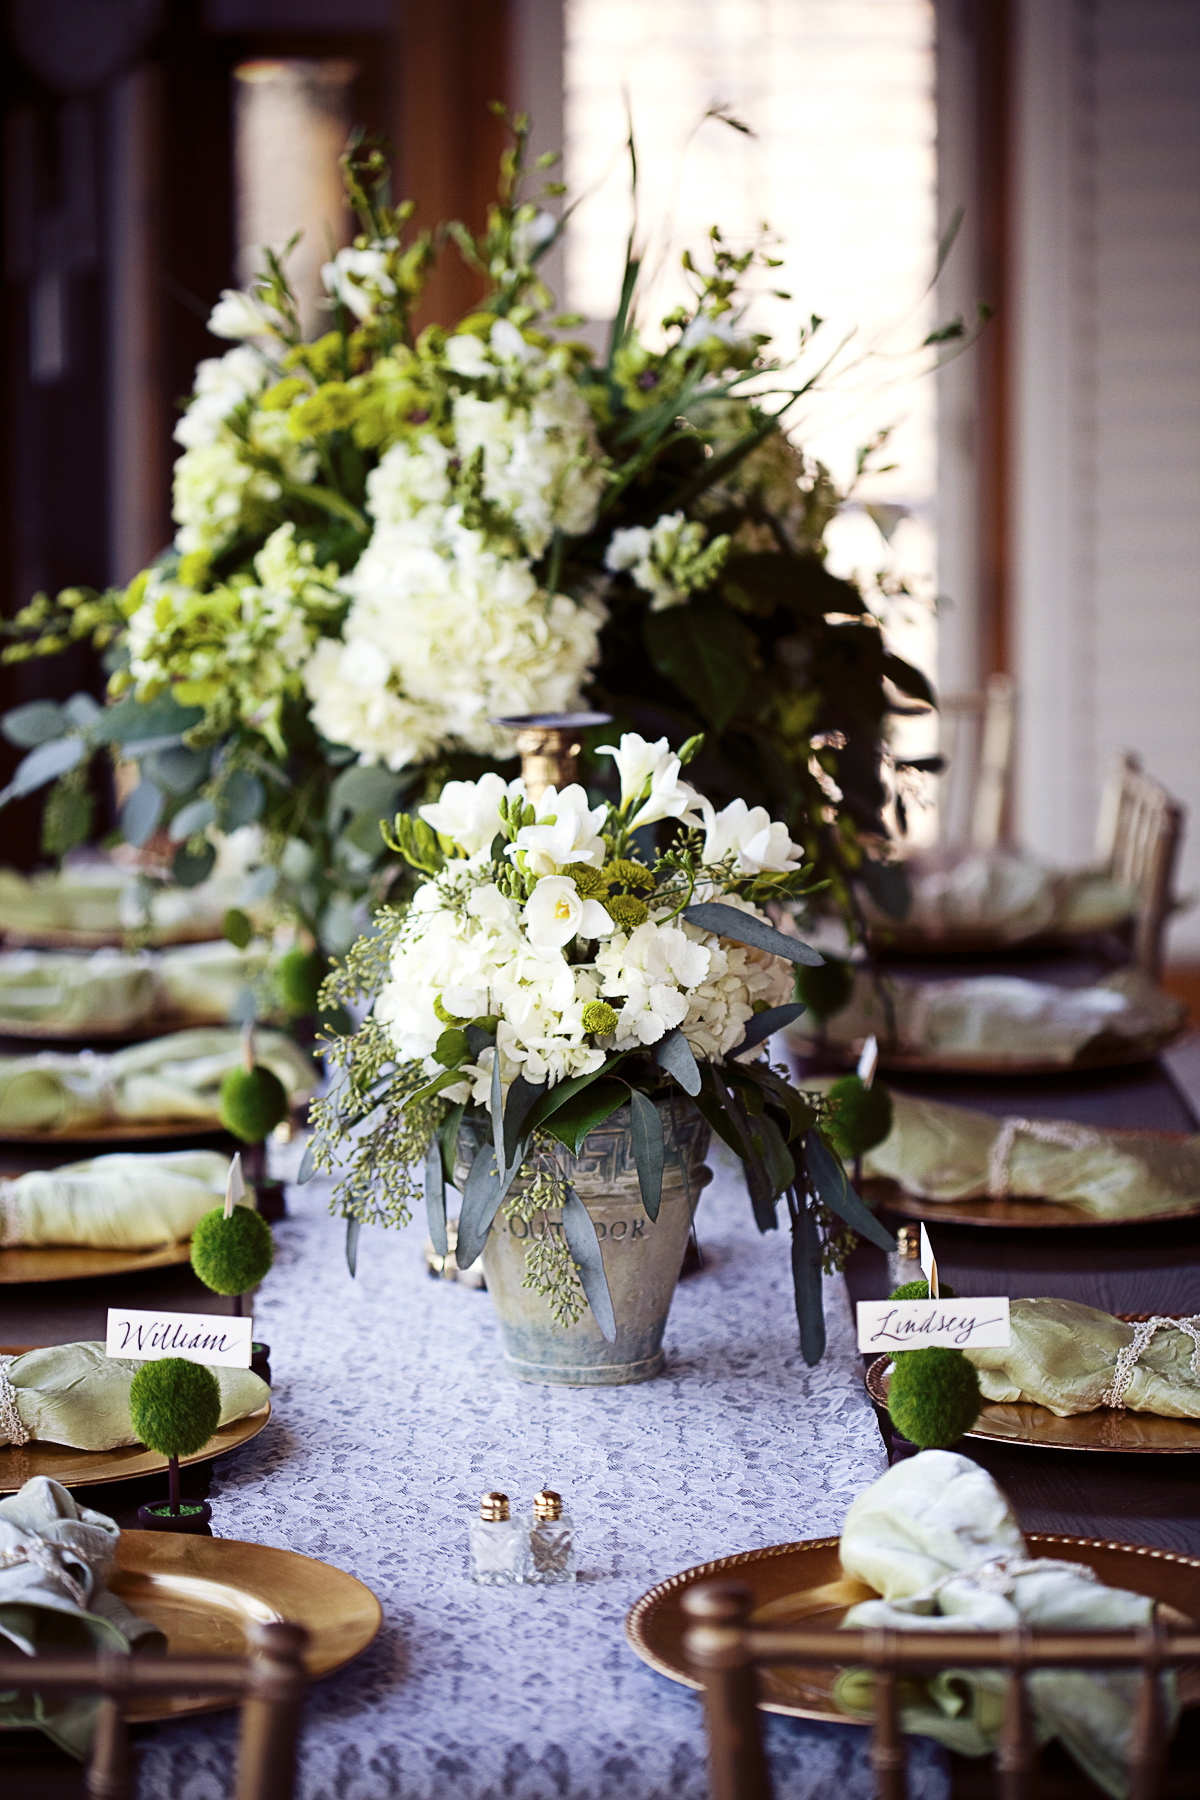 Flowers & Decor, Stationery, Real Weddings, Wedding Style, ivory, green, Place Cards, Fall Weddings, Rustic Real Weddings, Southern Real Weddings, Fall Real Weddings, Rustic Weddings, Fall Wedding Flowers & Decor, Rustic Wedding Flowers & Decor, Table settings, Centerpices